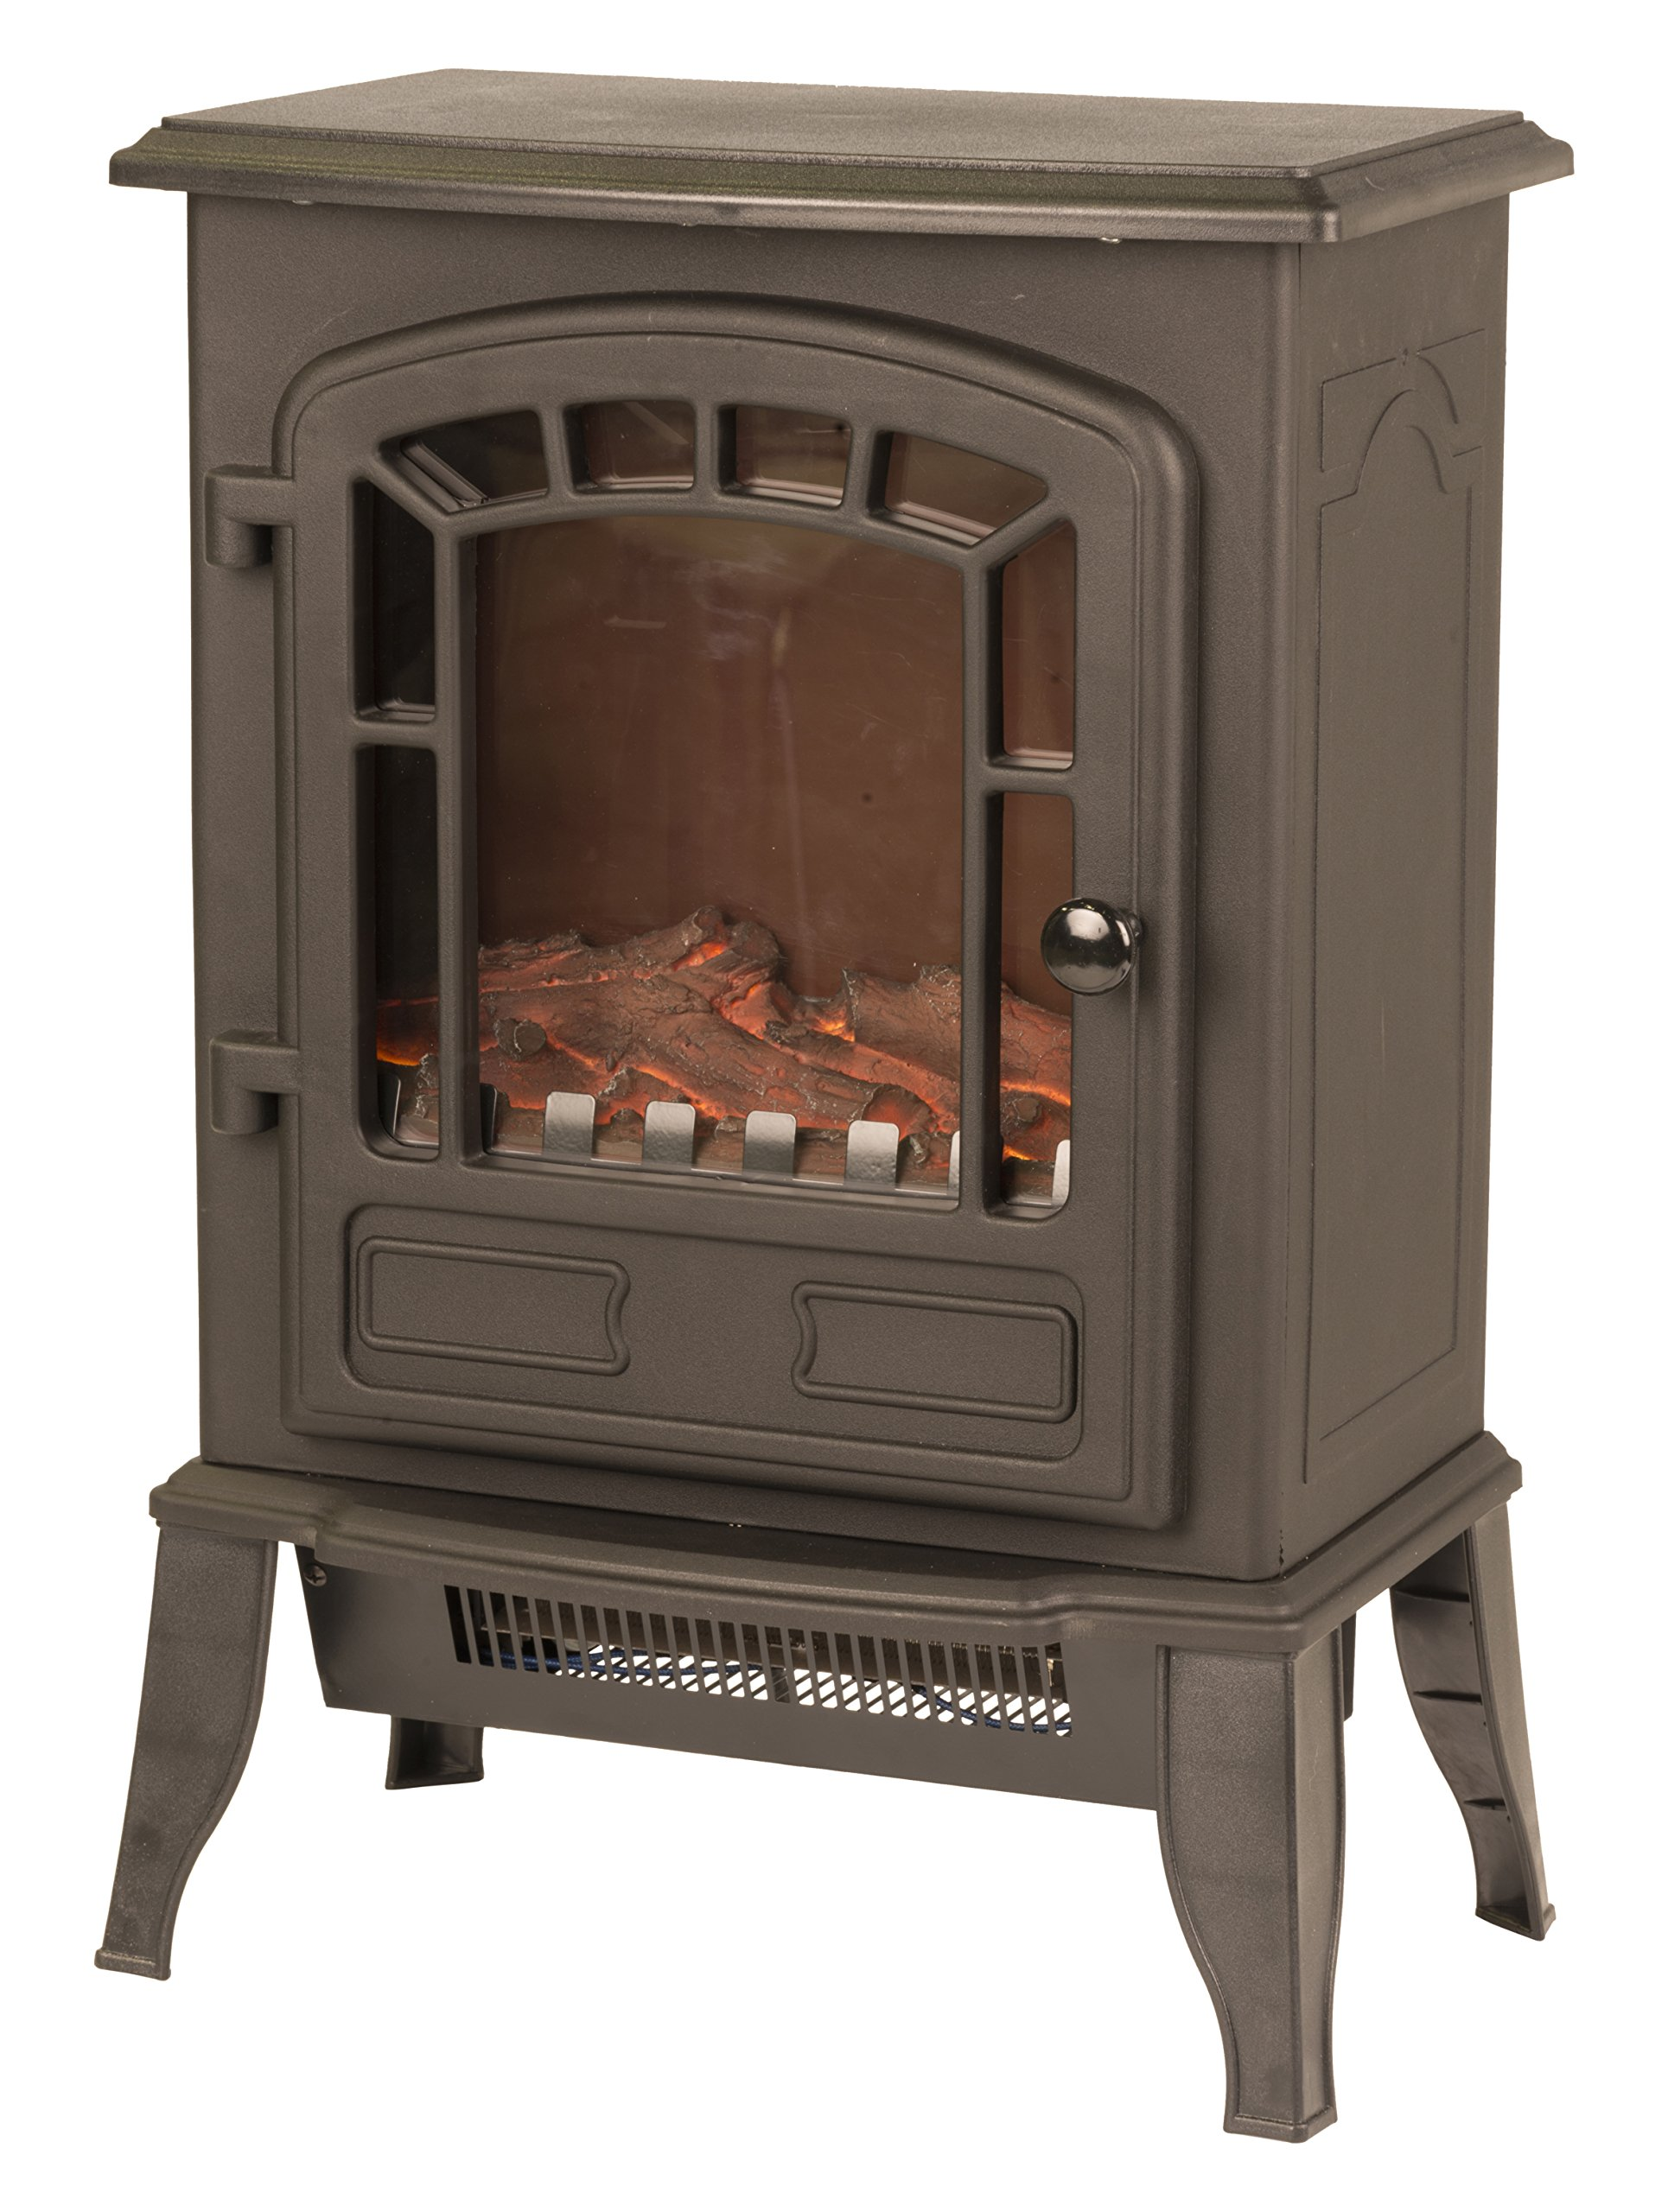 Classic Fire 22417 Heater Torino product image